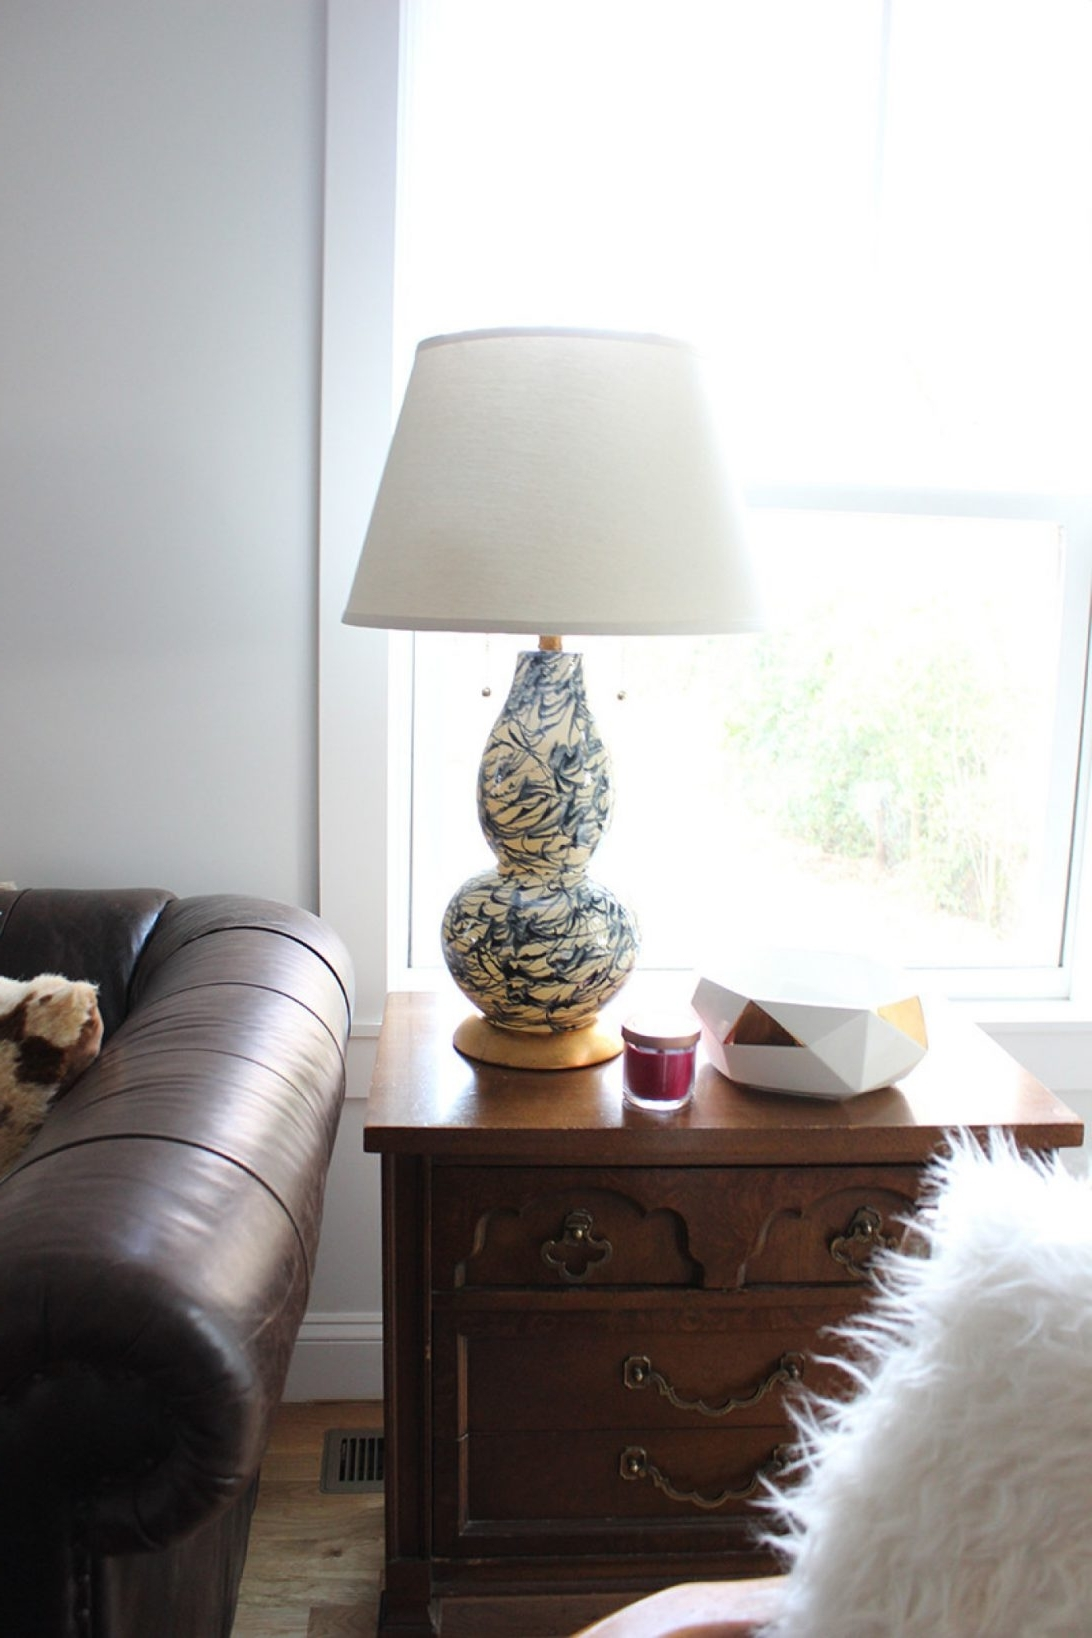 Fashionable 62 Most Skookum Bedside Lights Brass Table Lamp Big Lamps For Living Inside Table Lamps For Living Room (View 15 of 20)